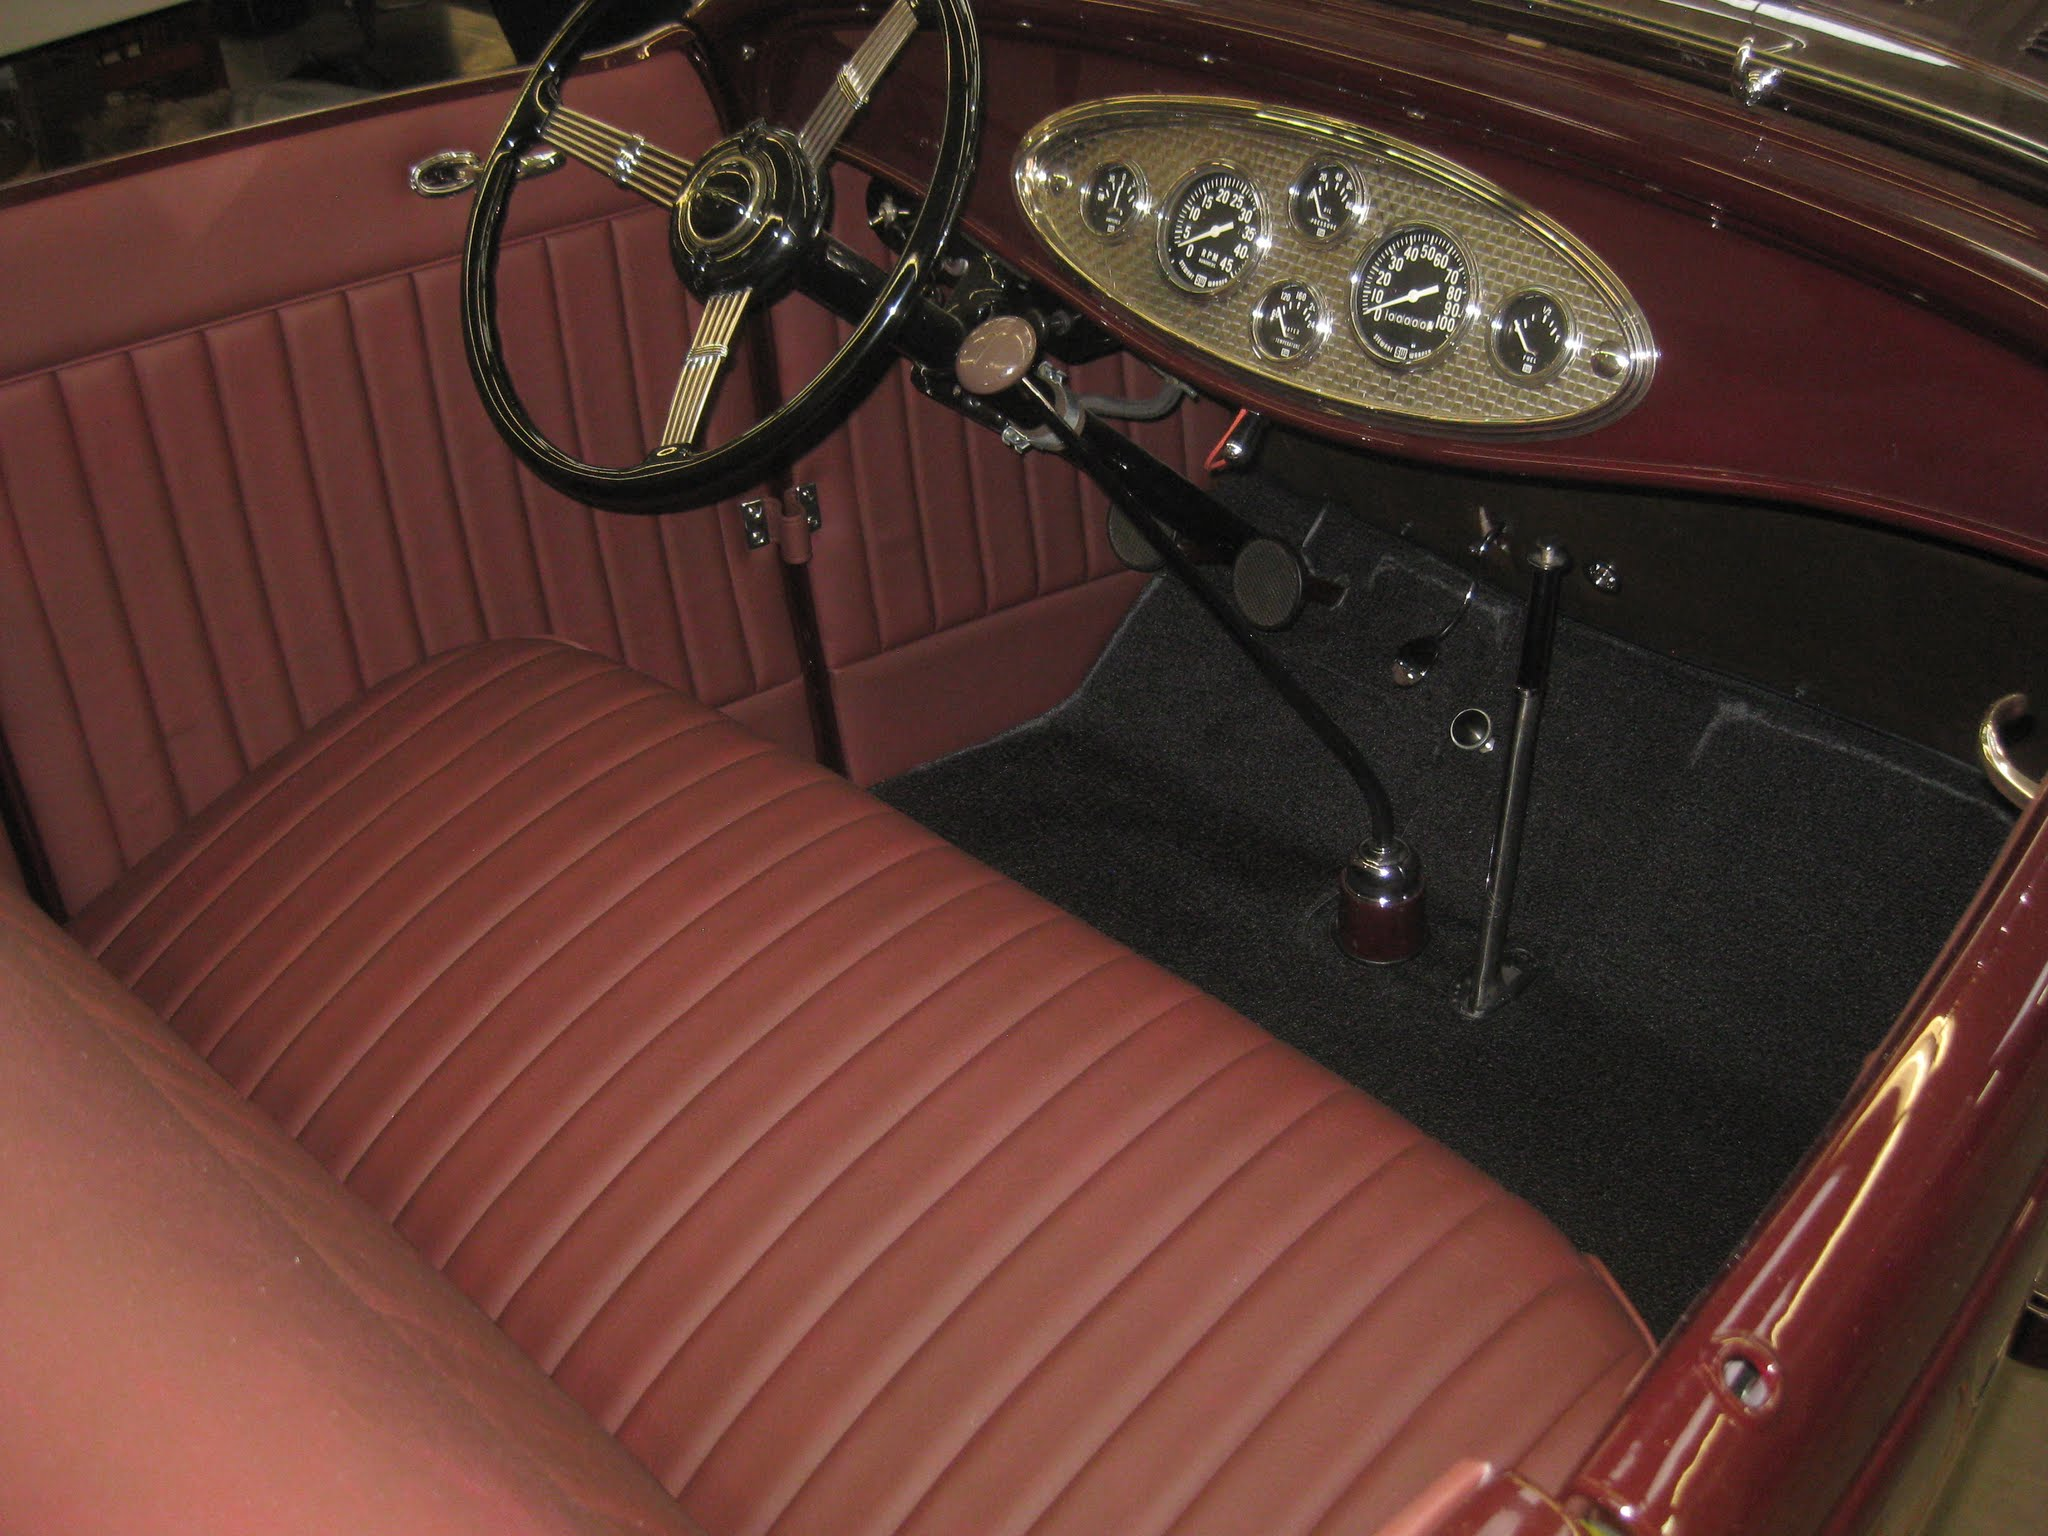 1932 Ford Roadster Ls Portage Trim Professional Automotive Upholstery